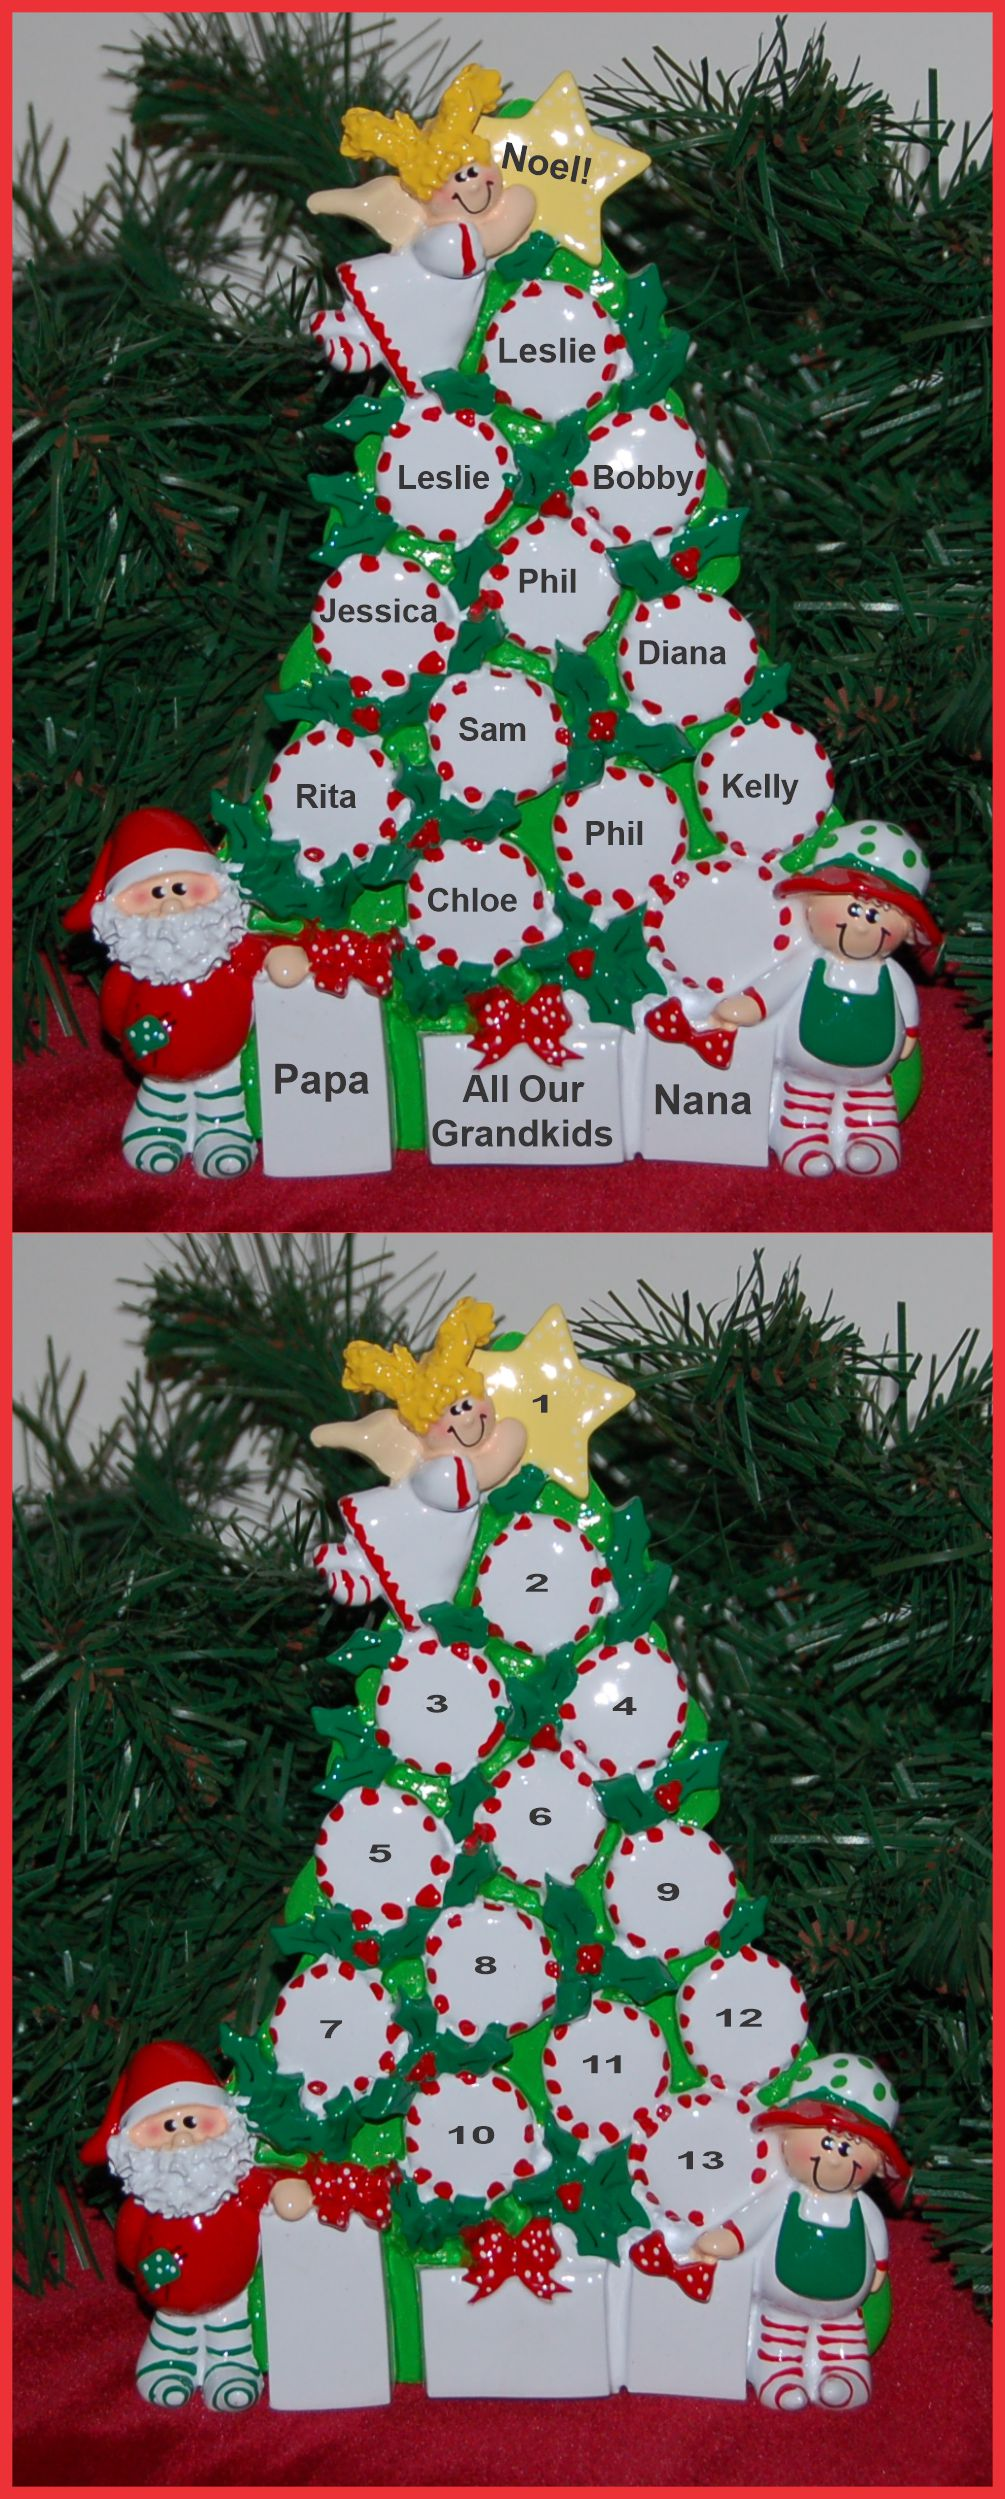 Personalized Grandparents Tabletop Christmas Decoration Peppermints for 11 by Russell Rhodes